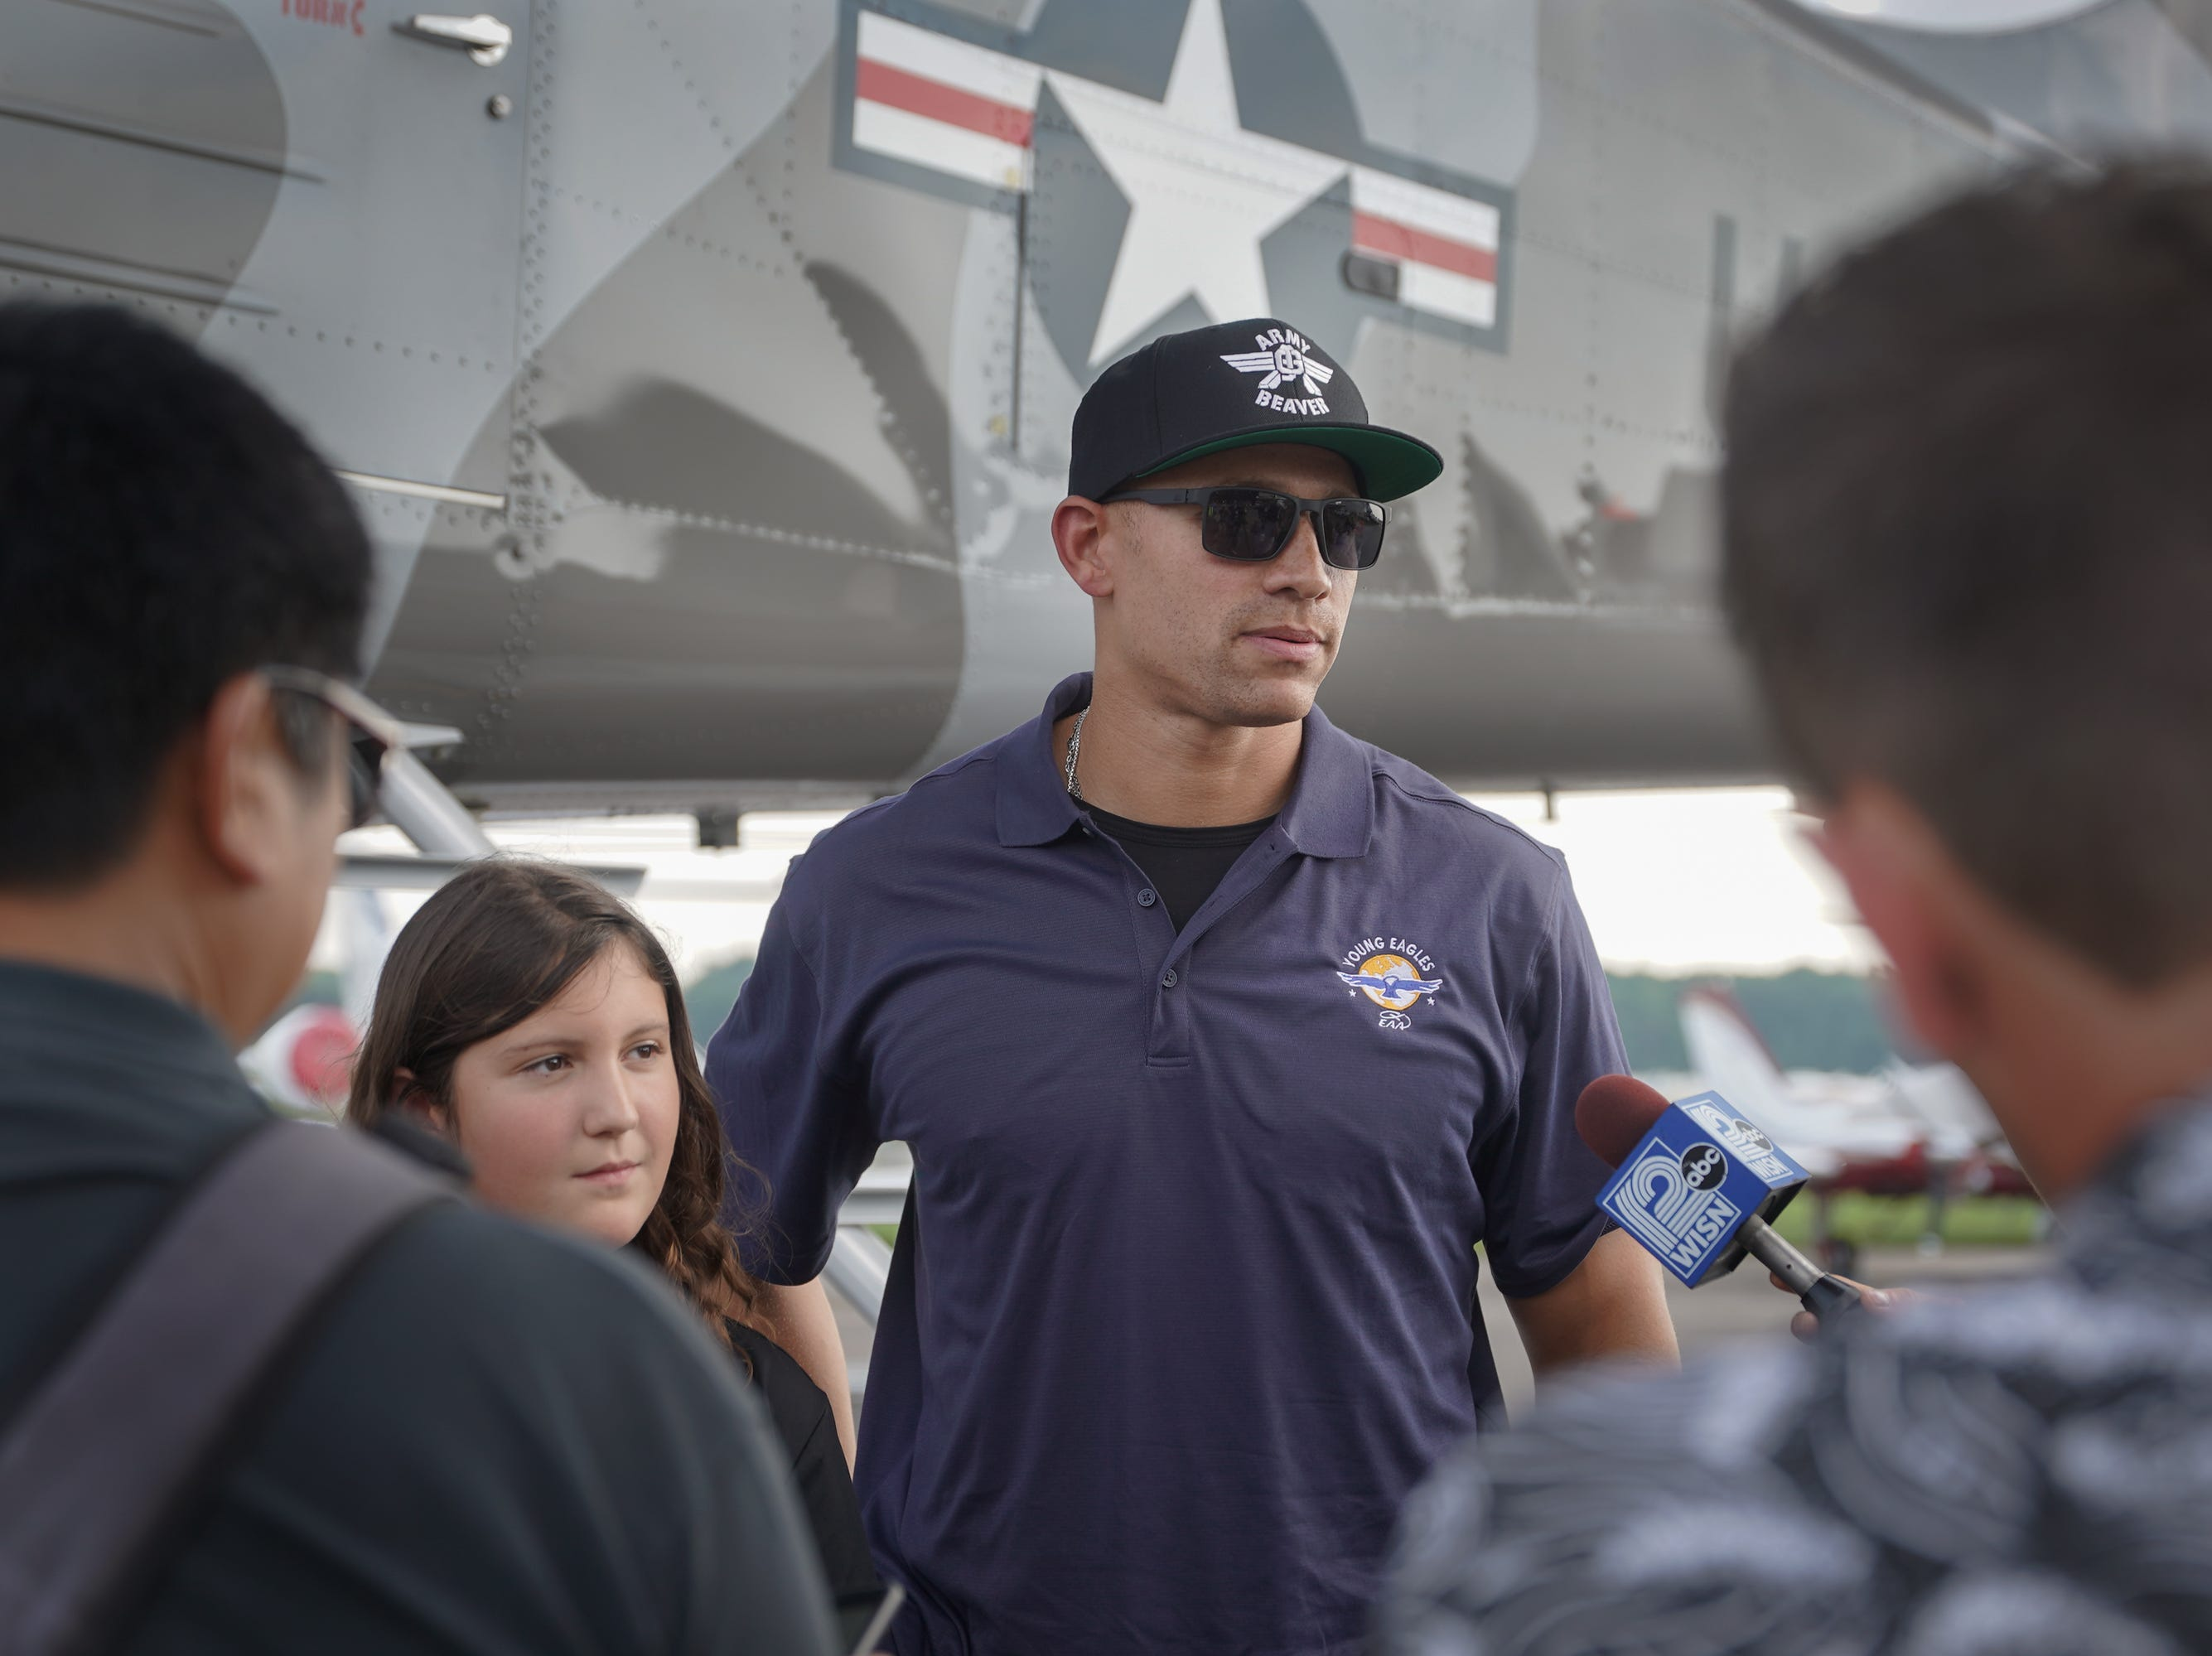 Jimmy Graham talks to the press after his Young Eagles flight. EAA announced  new Young Eagles co-chairman Jimmy Graham with a special flight Monday afternoon. Graham, a Pro Bowl player who is now a tight end with the Green Bay Packers, flew two Young Eagles with Chairman Sean D. Tucker.